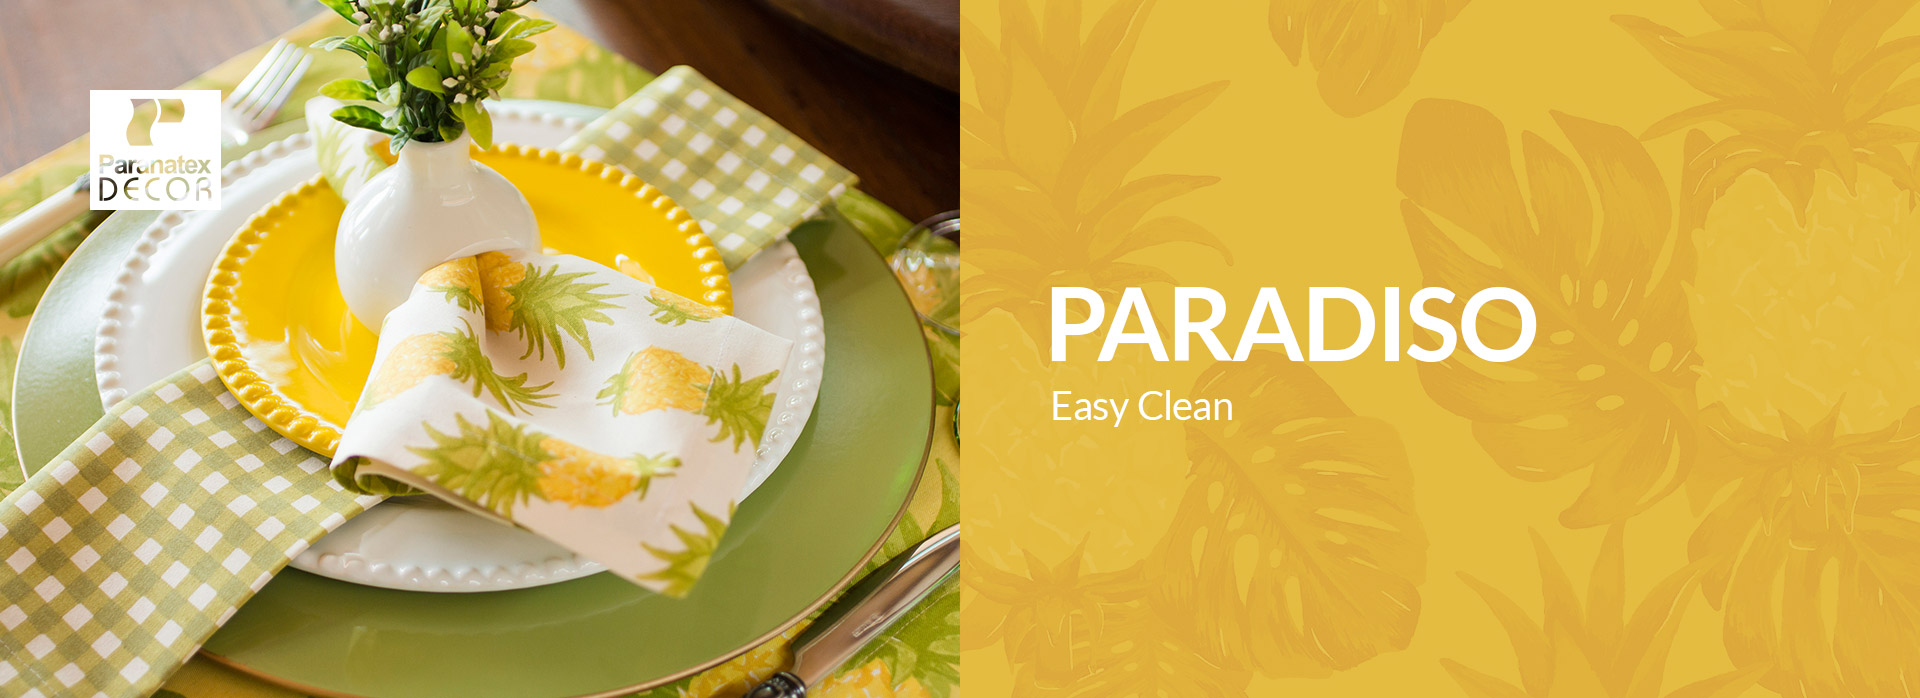 Paradiso Easy Clean